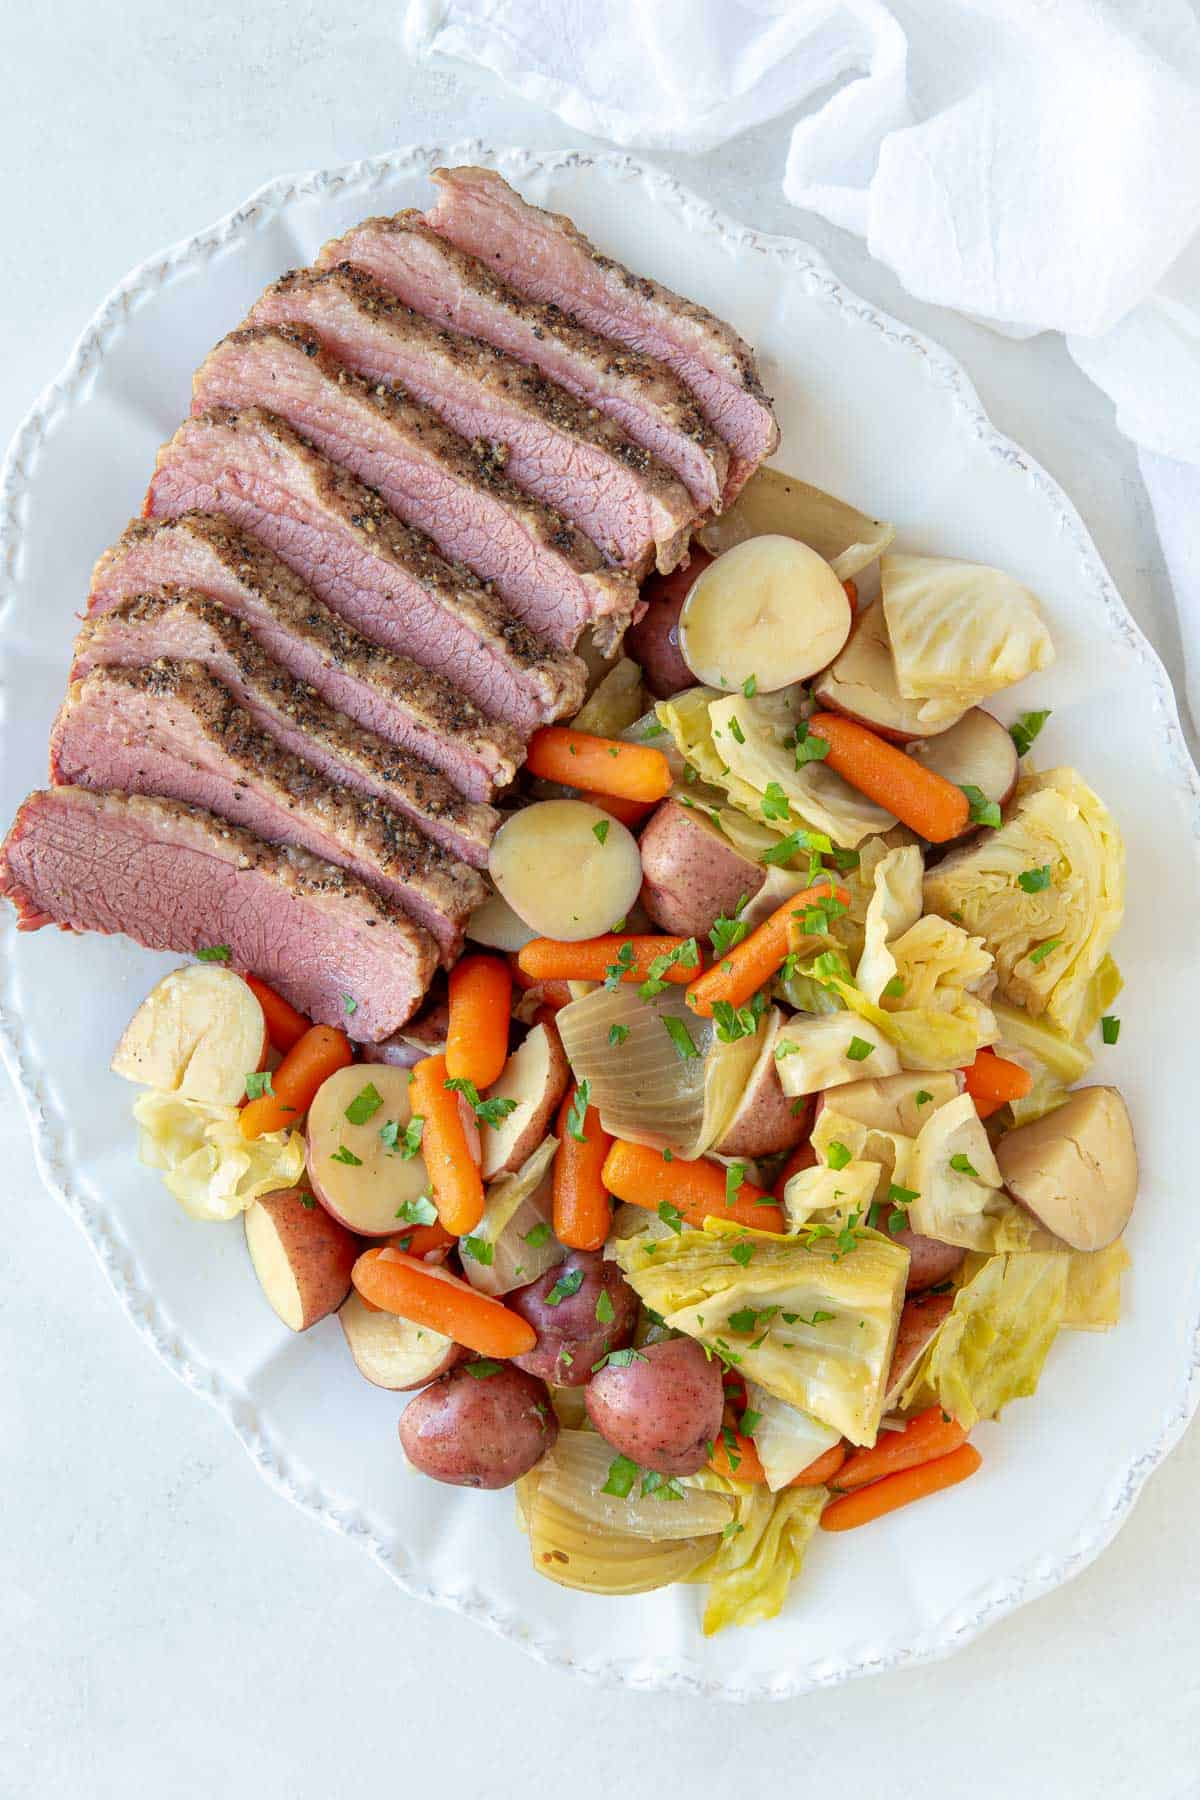 Overhead view of corned beef with cabbage, potatoes, onions and carrots on a white platter.